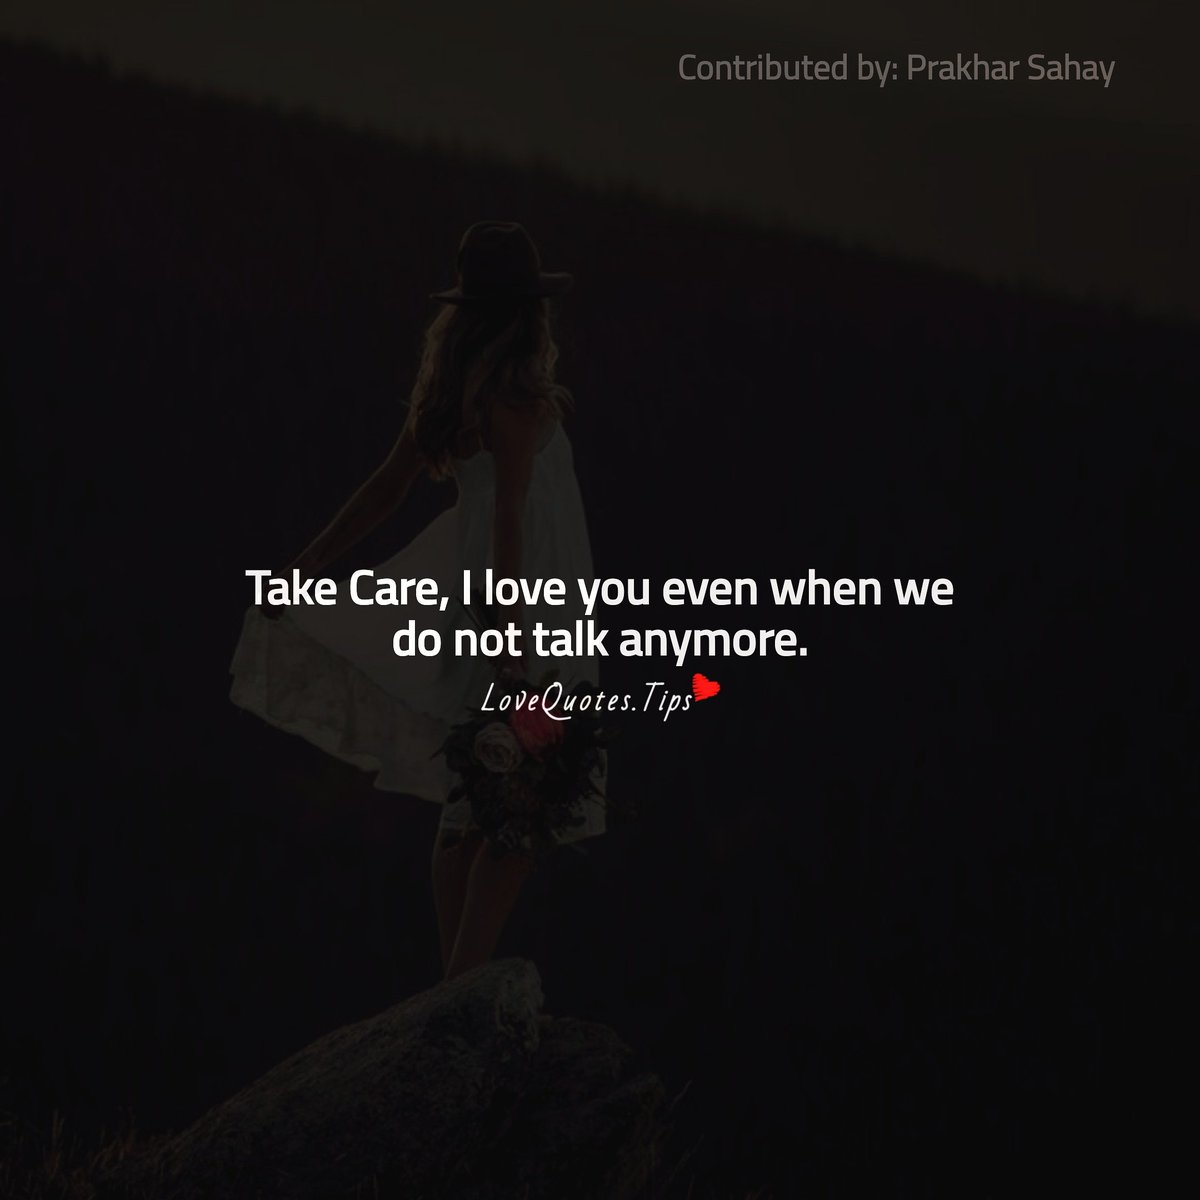 #TakeCare, #iloveyou even we do not talk anymore. #LoveQuotes pic.twitter.com/auhfNRNjls